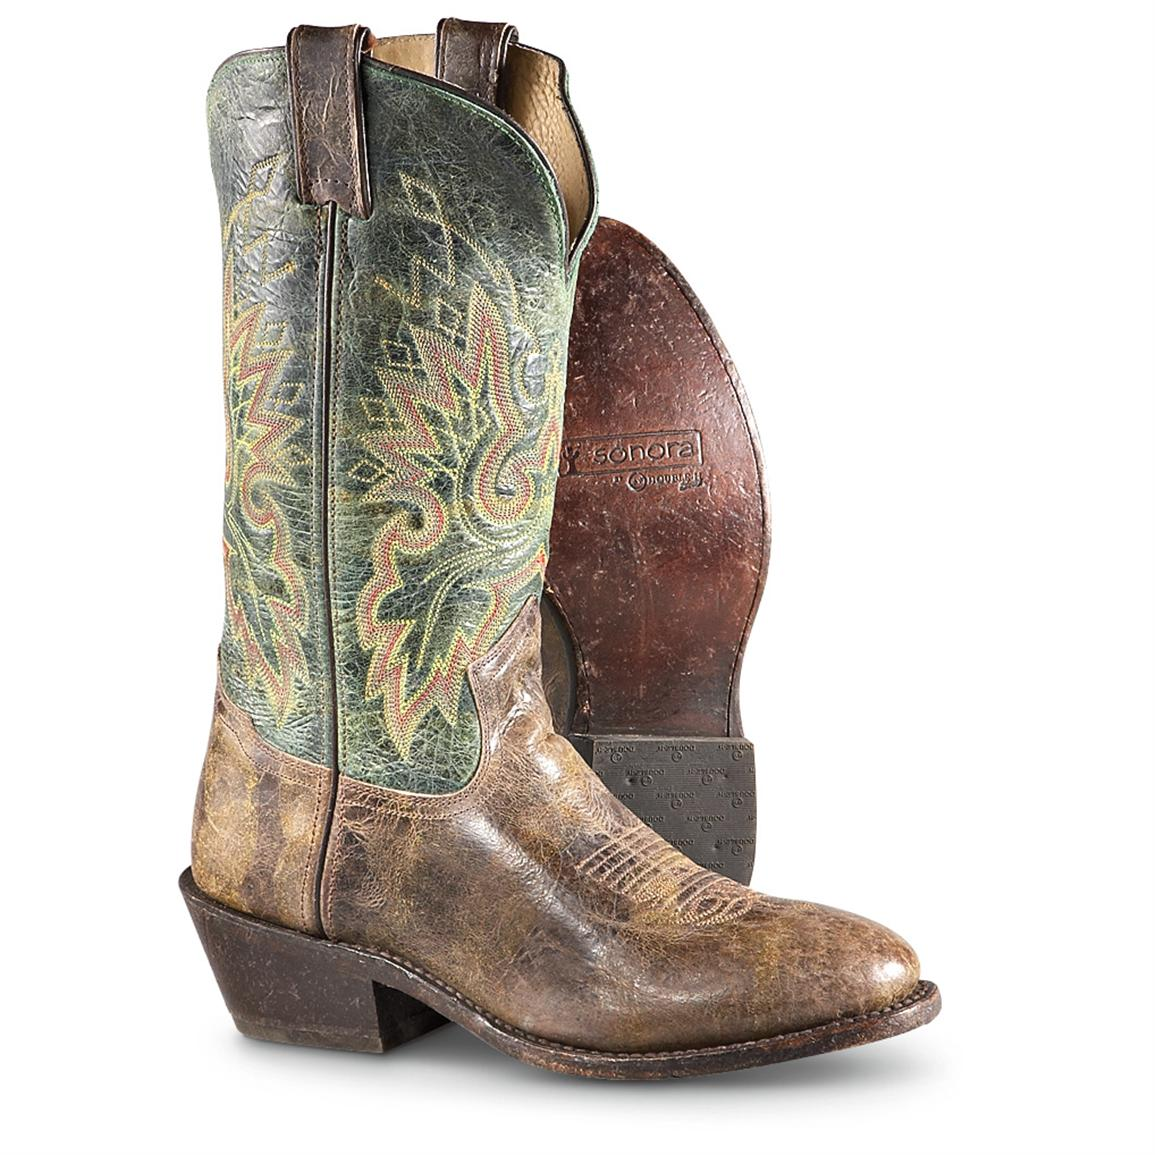 Men's Double H® 12 inch Western Boots, Onyx / Forest Green